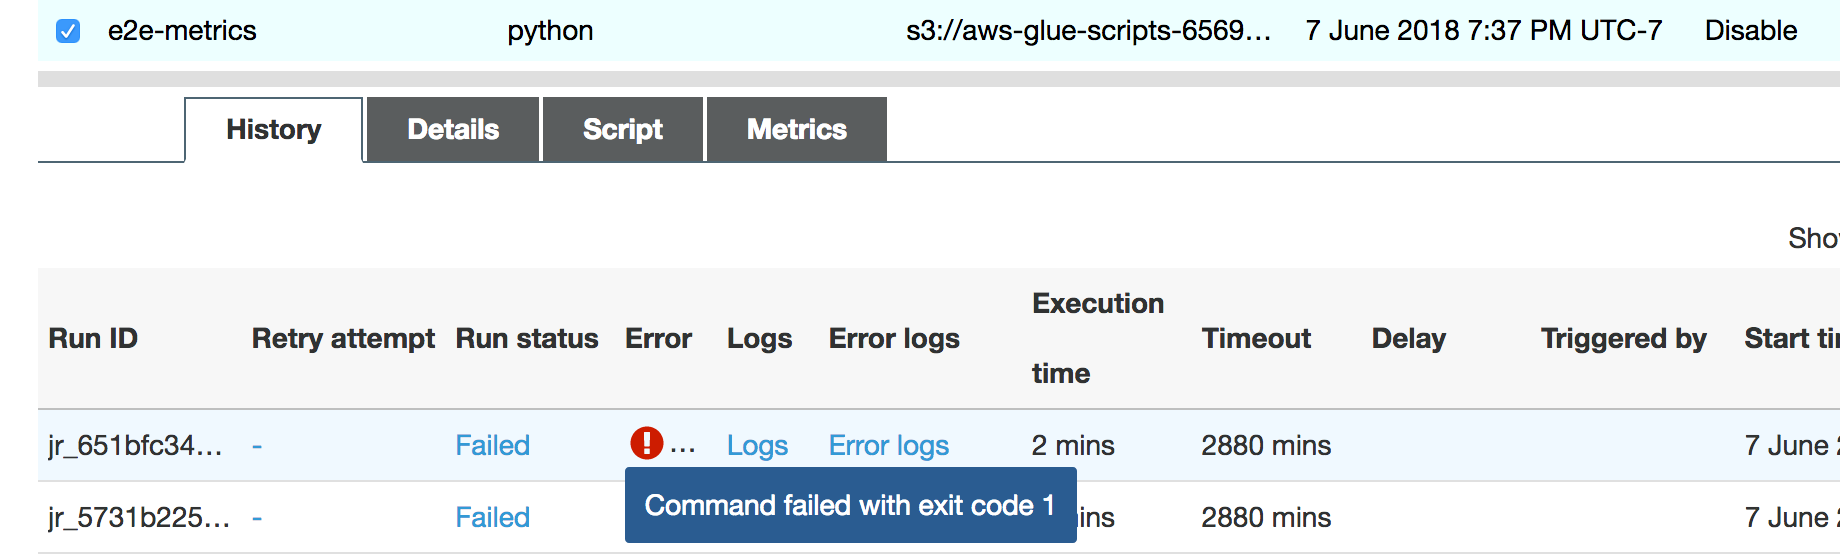 Debugging OOM Exceptions and Job Abnormalities - AWS Glue